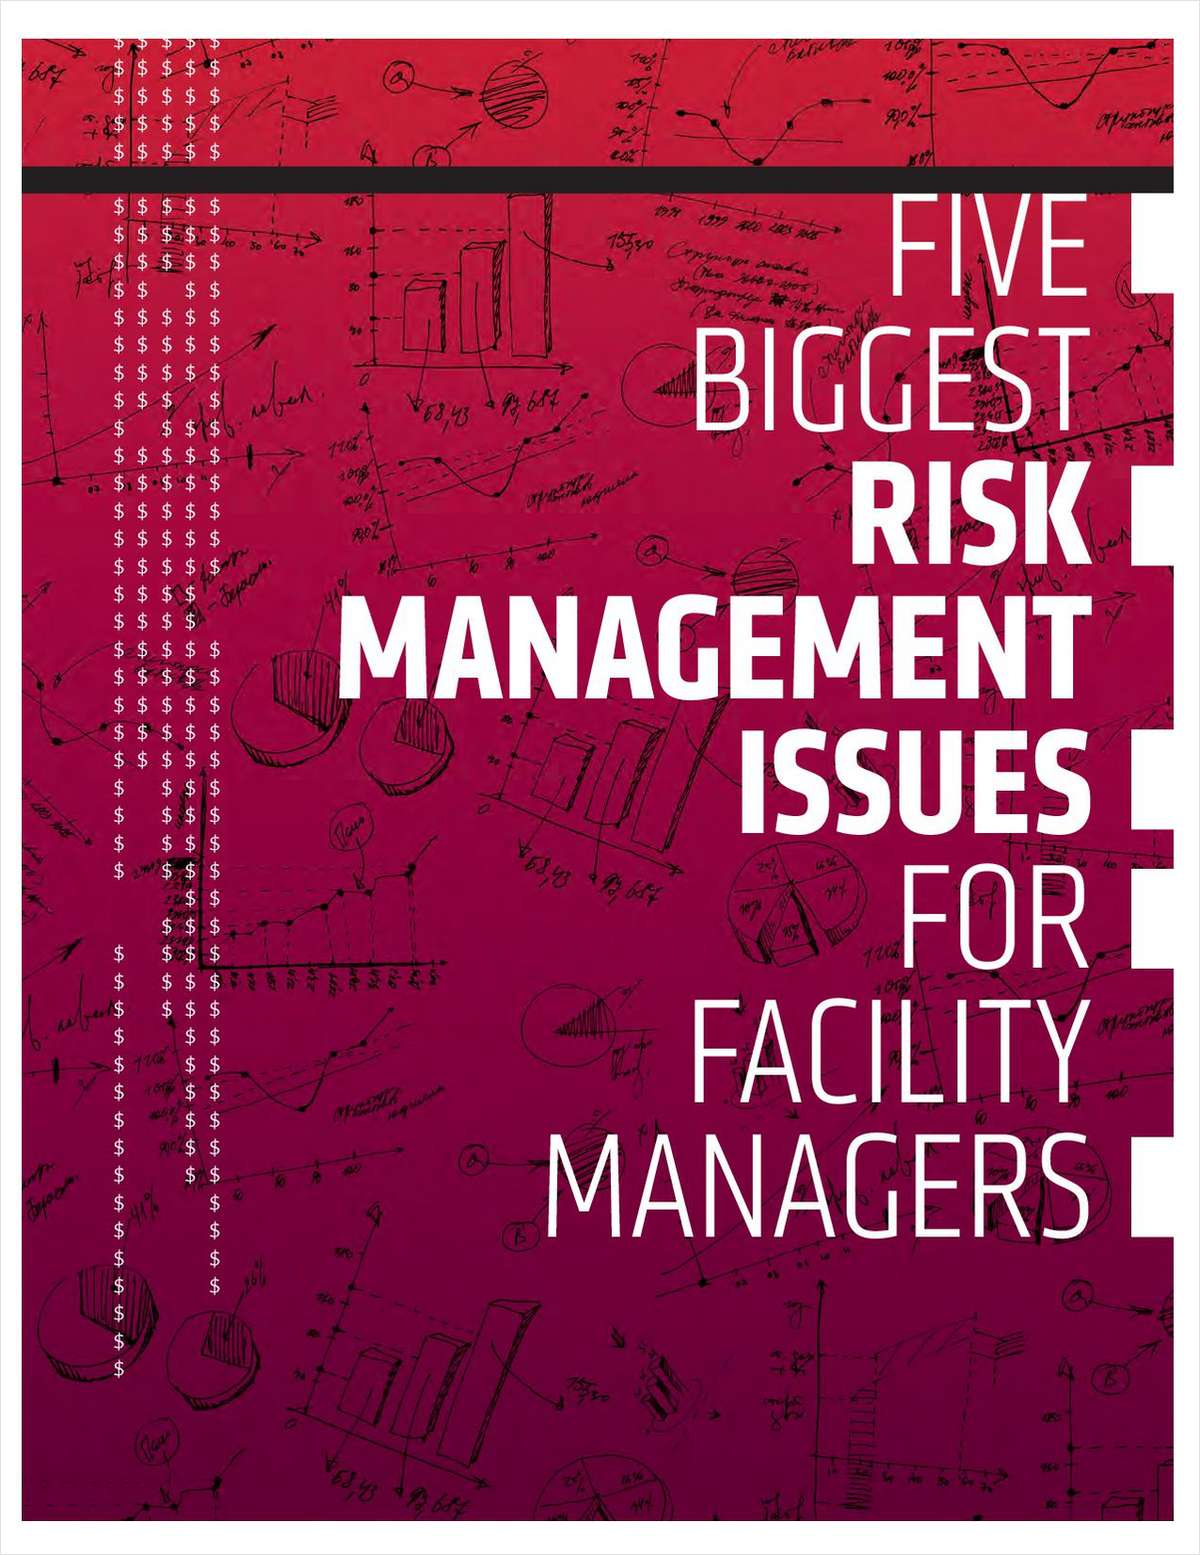 5 Biggest Risk Management Issues For Facilities Managers